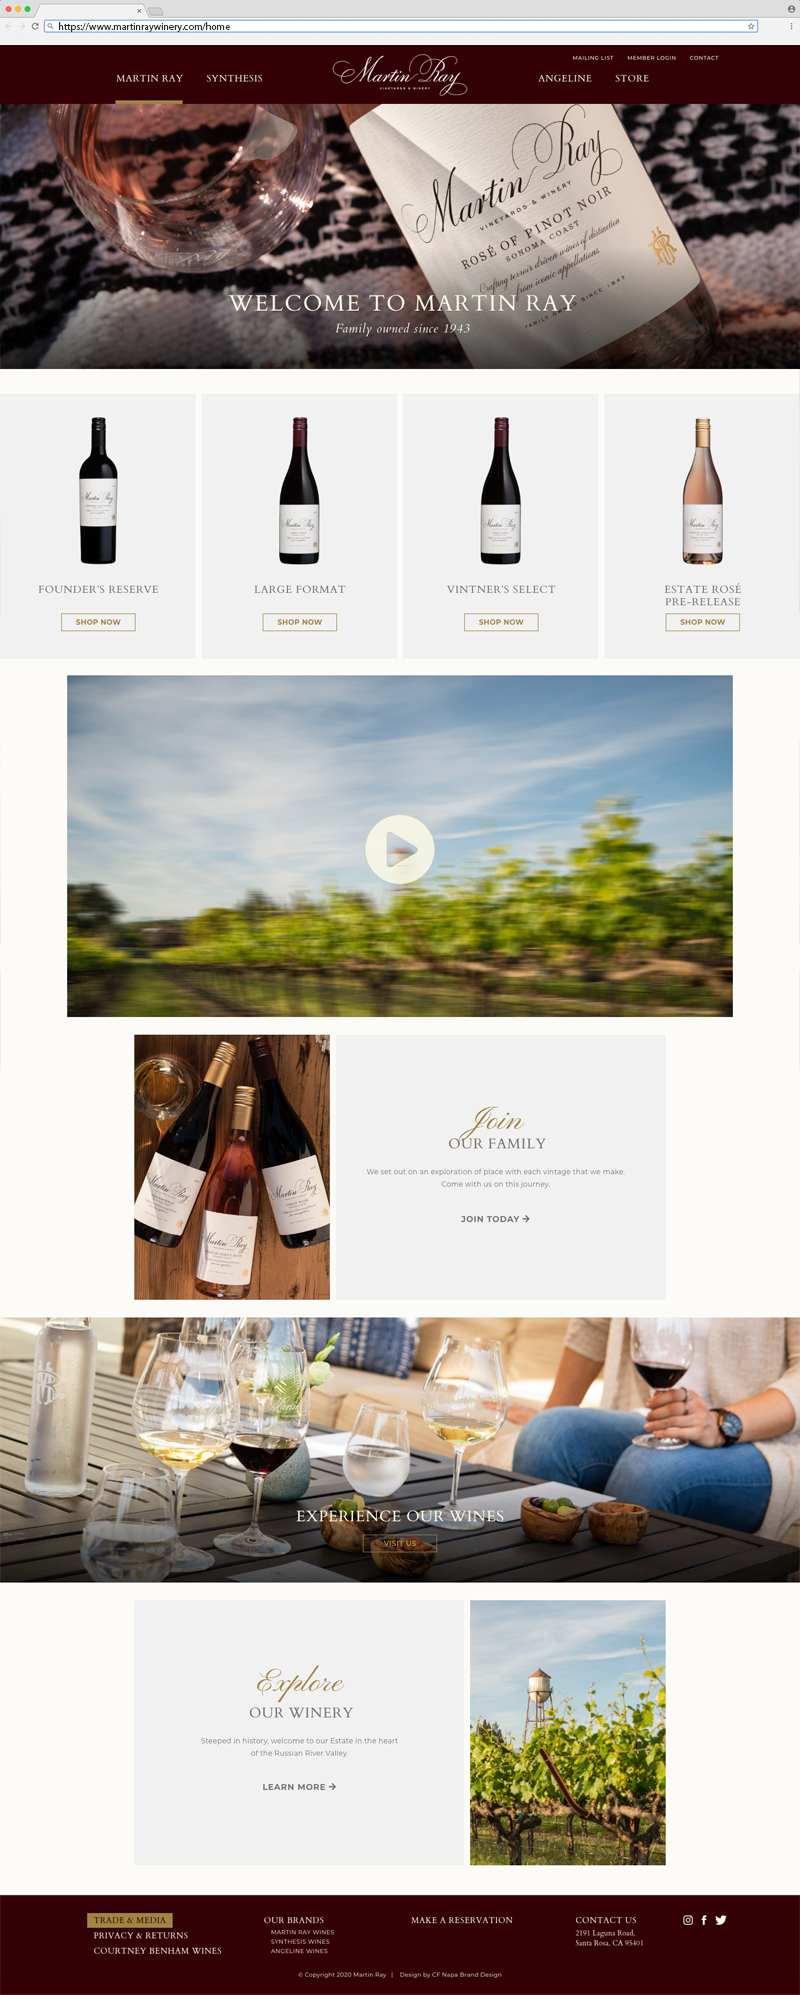 Martin Ray Vineyard & Winery Home Page Website Design